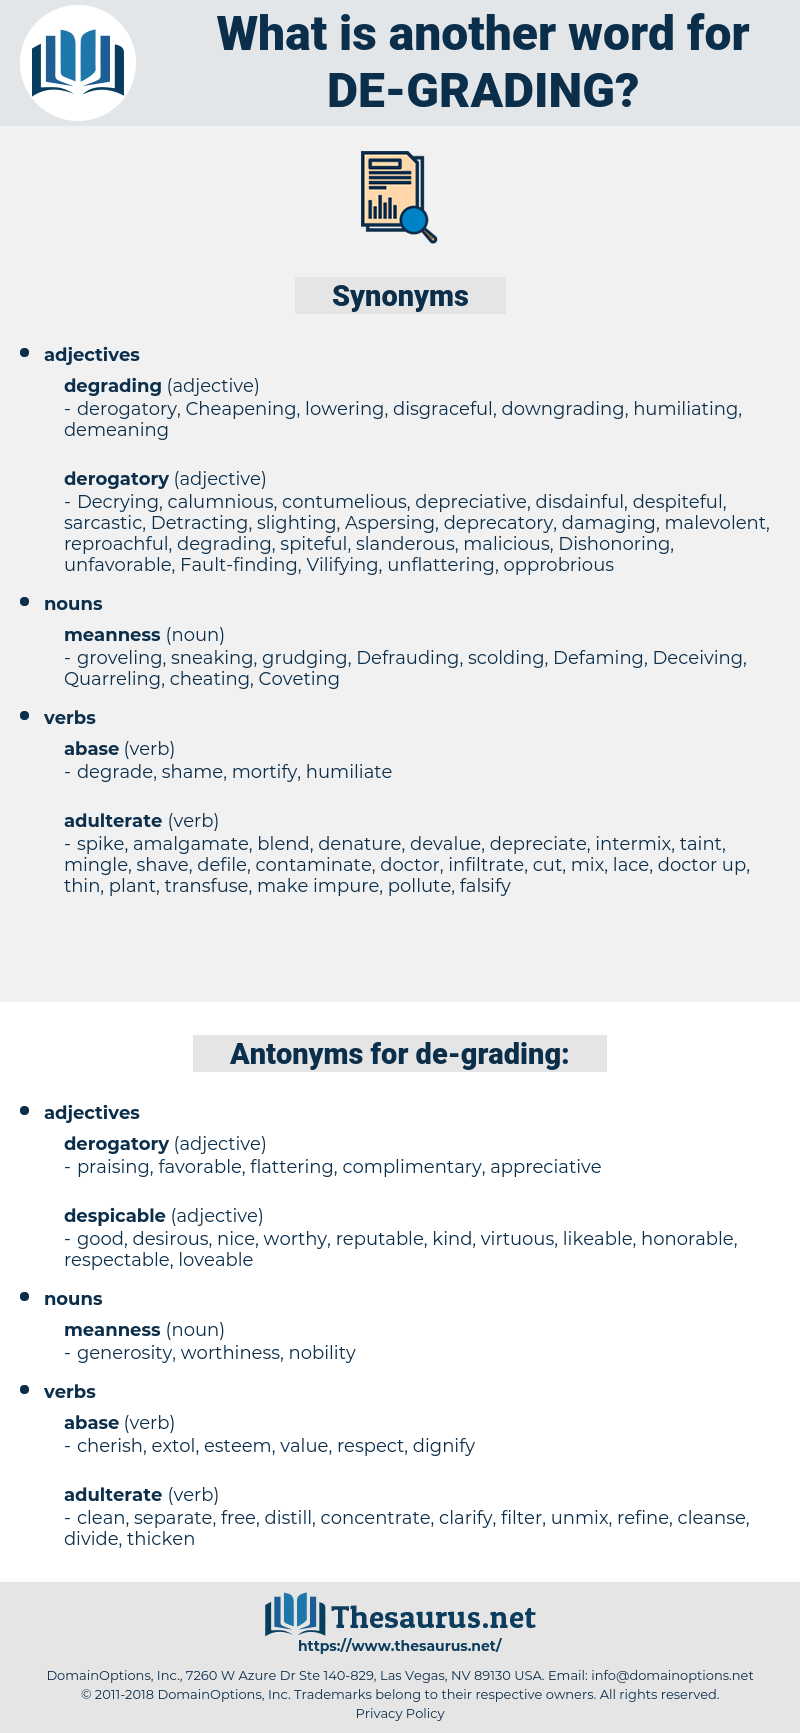 de grading, synonym de grading, another word for de grading, words like de grading, thesaurus de grading